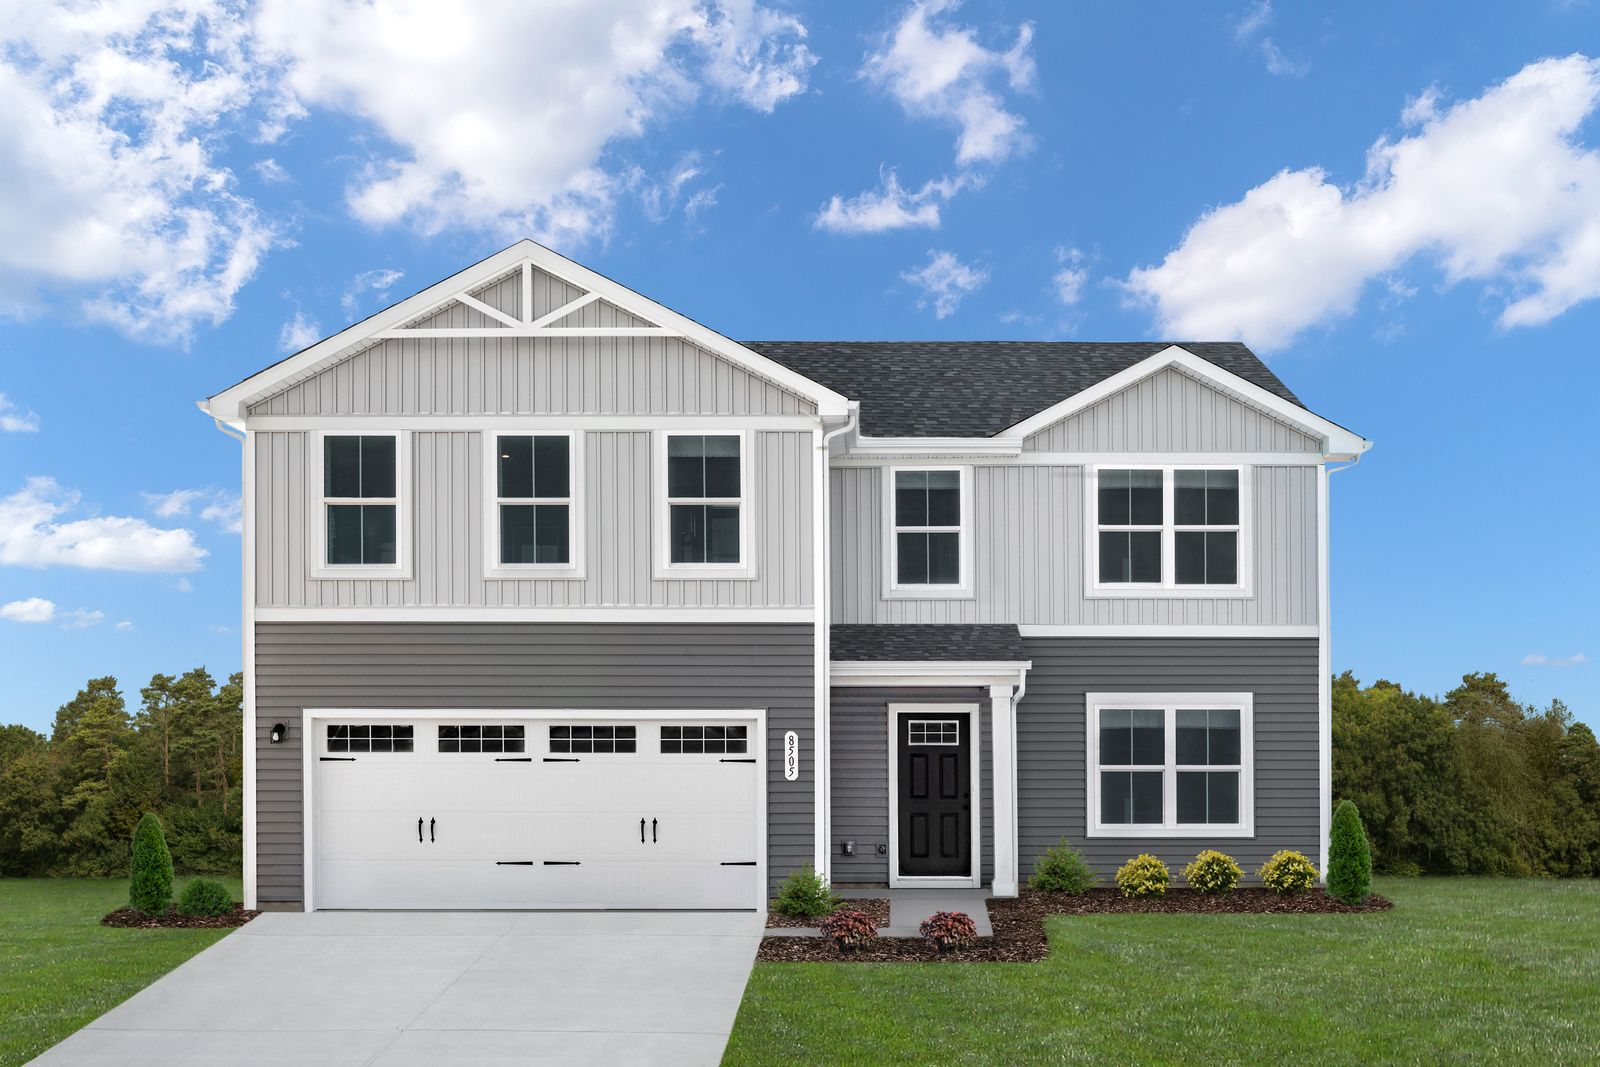 Welcome to Ridgely Forest:Own a brand new single family home with 2 car garage.We're here for you. Call to schedule your appointment today!